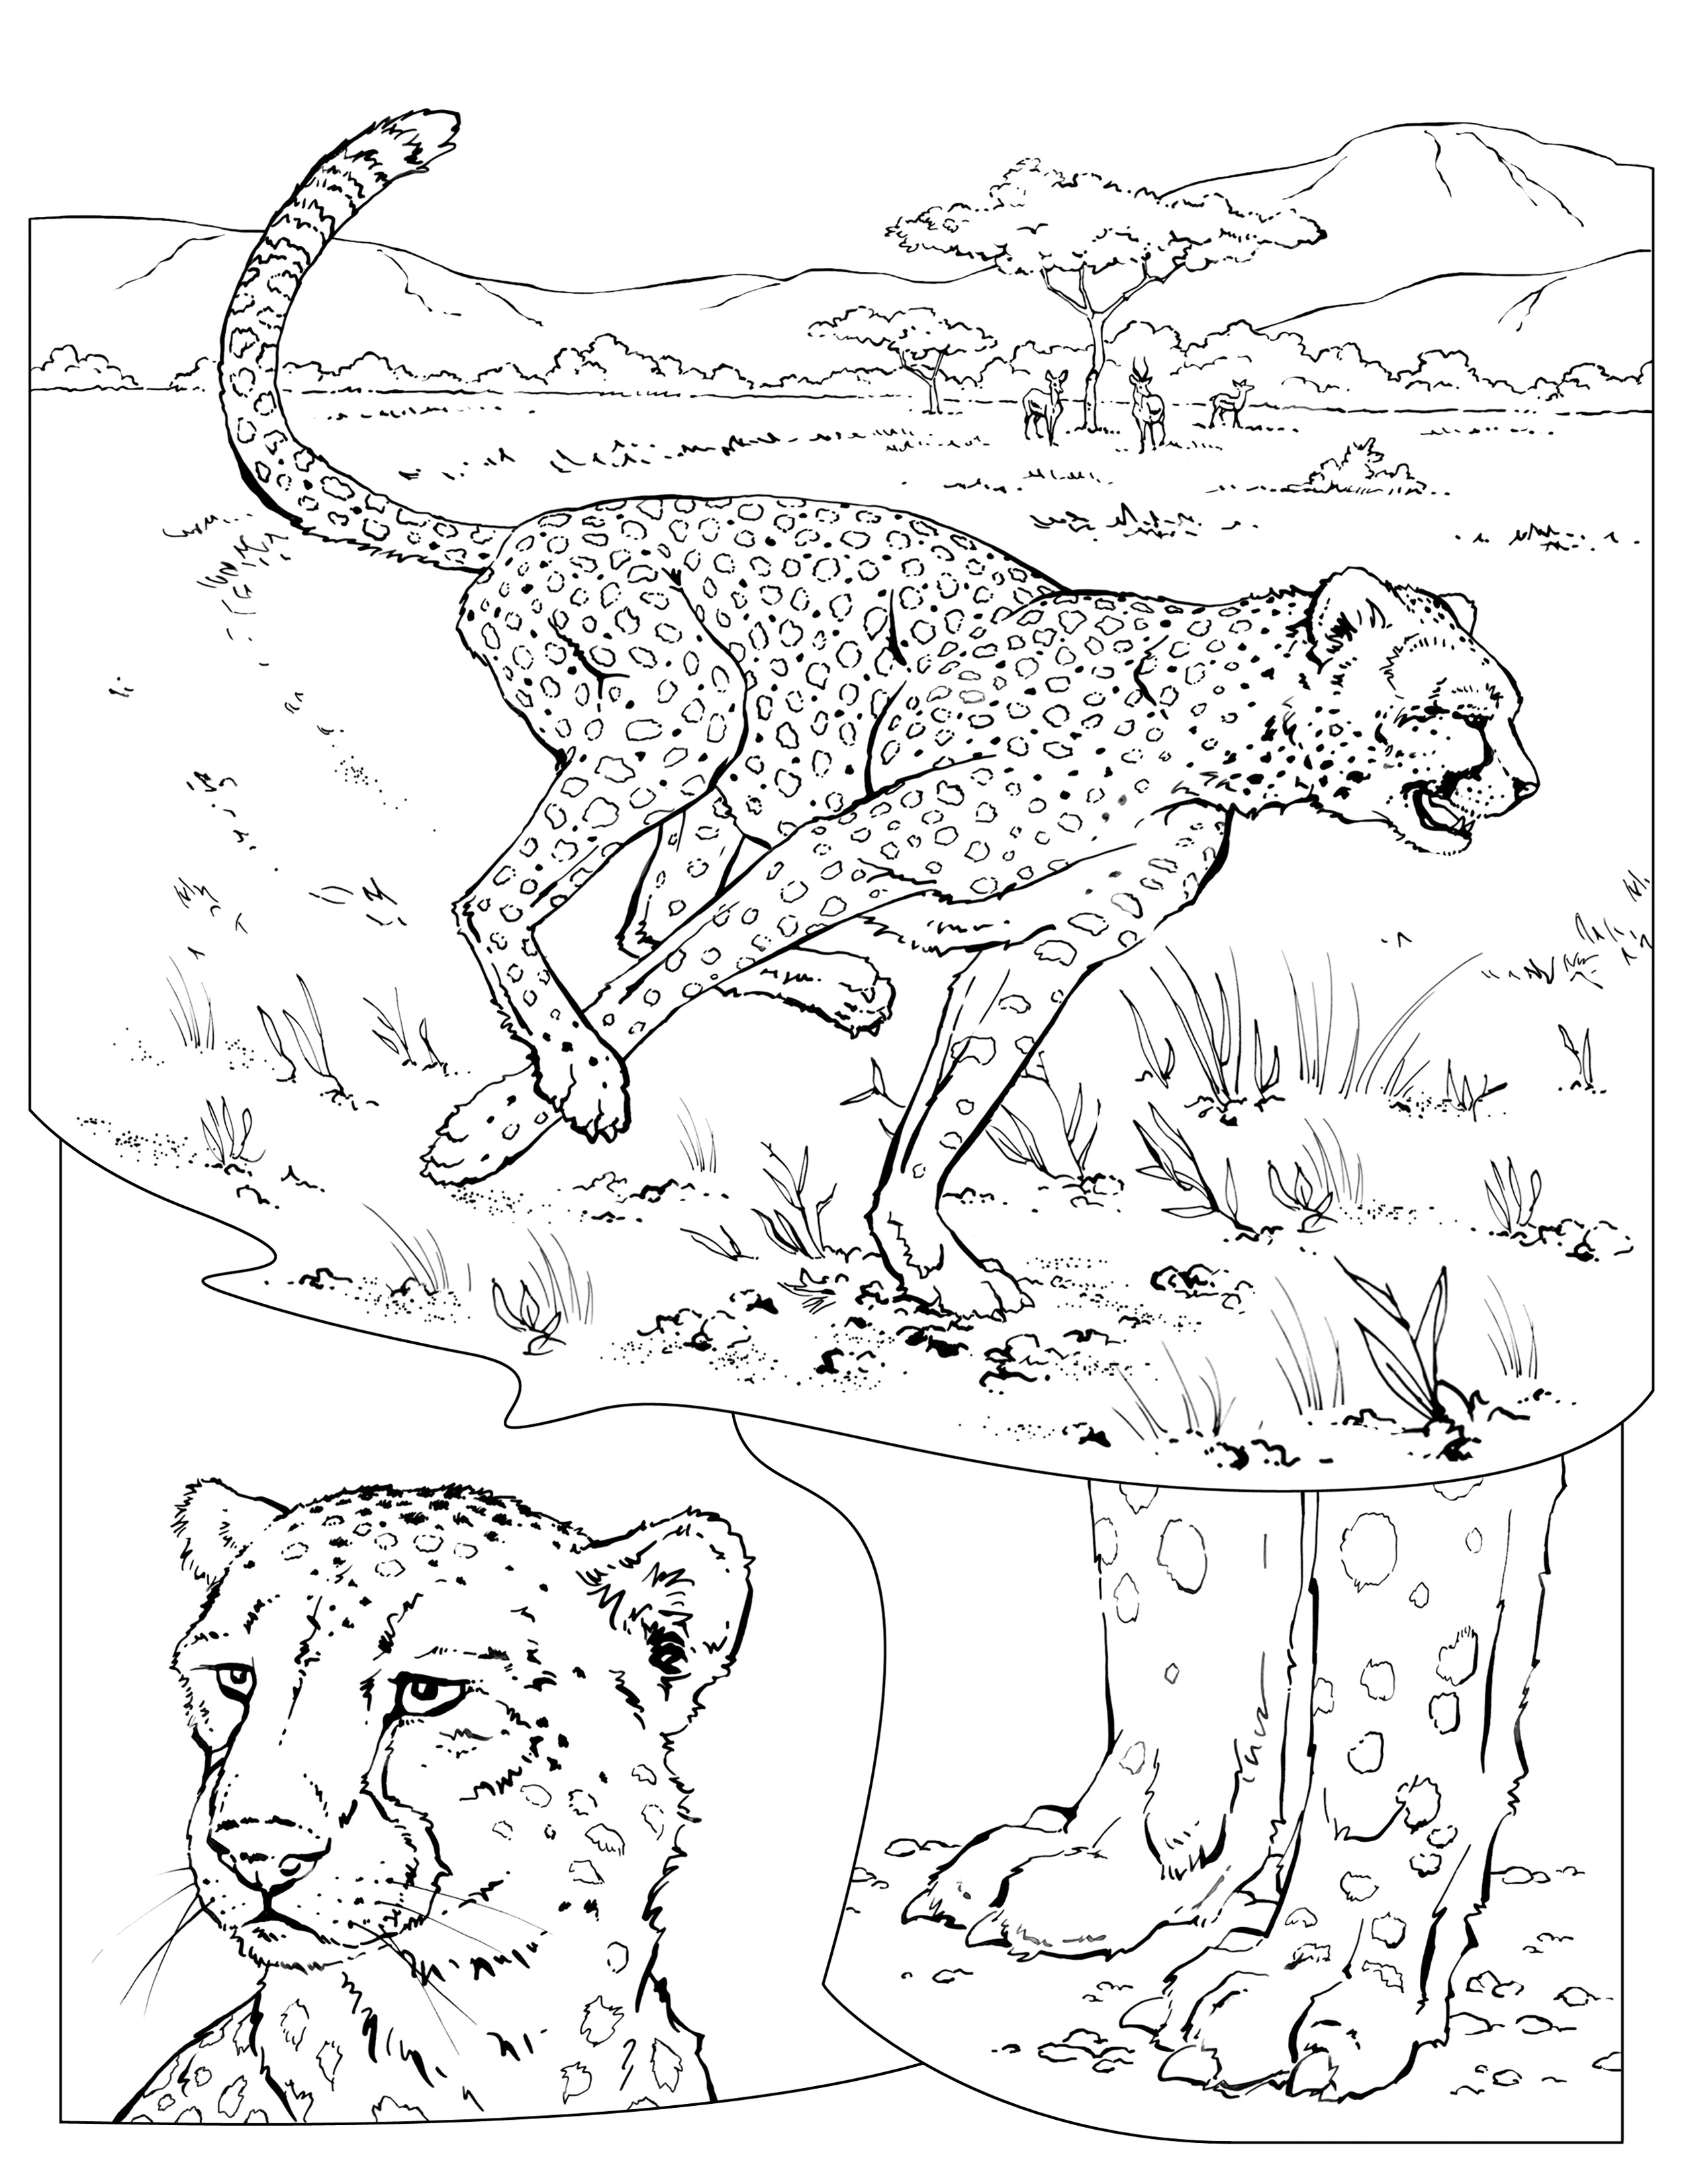 national geographic kids coloring pages coloring book animals j to z coloring pages national geographic kids